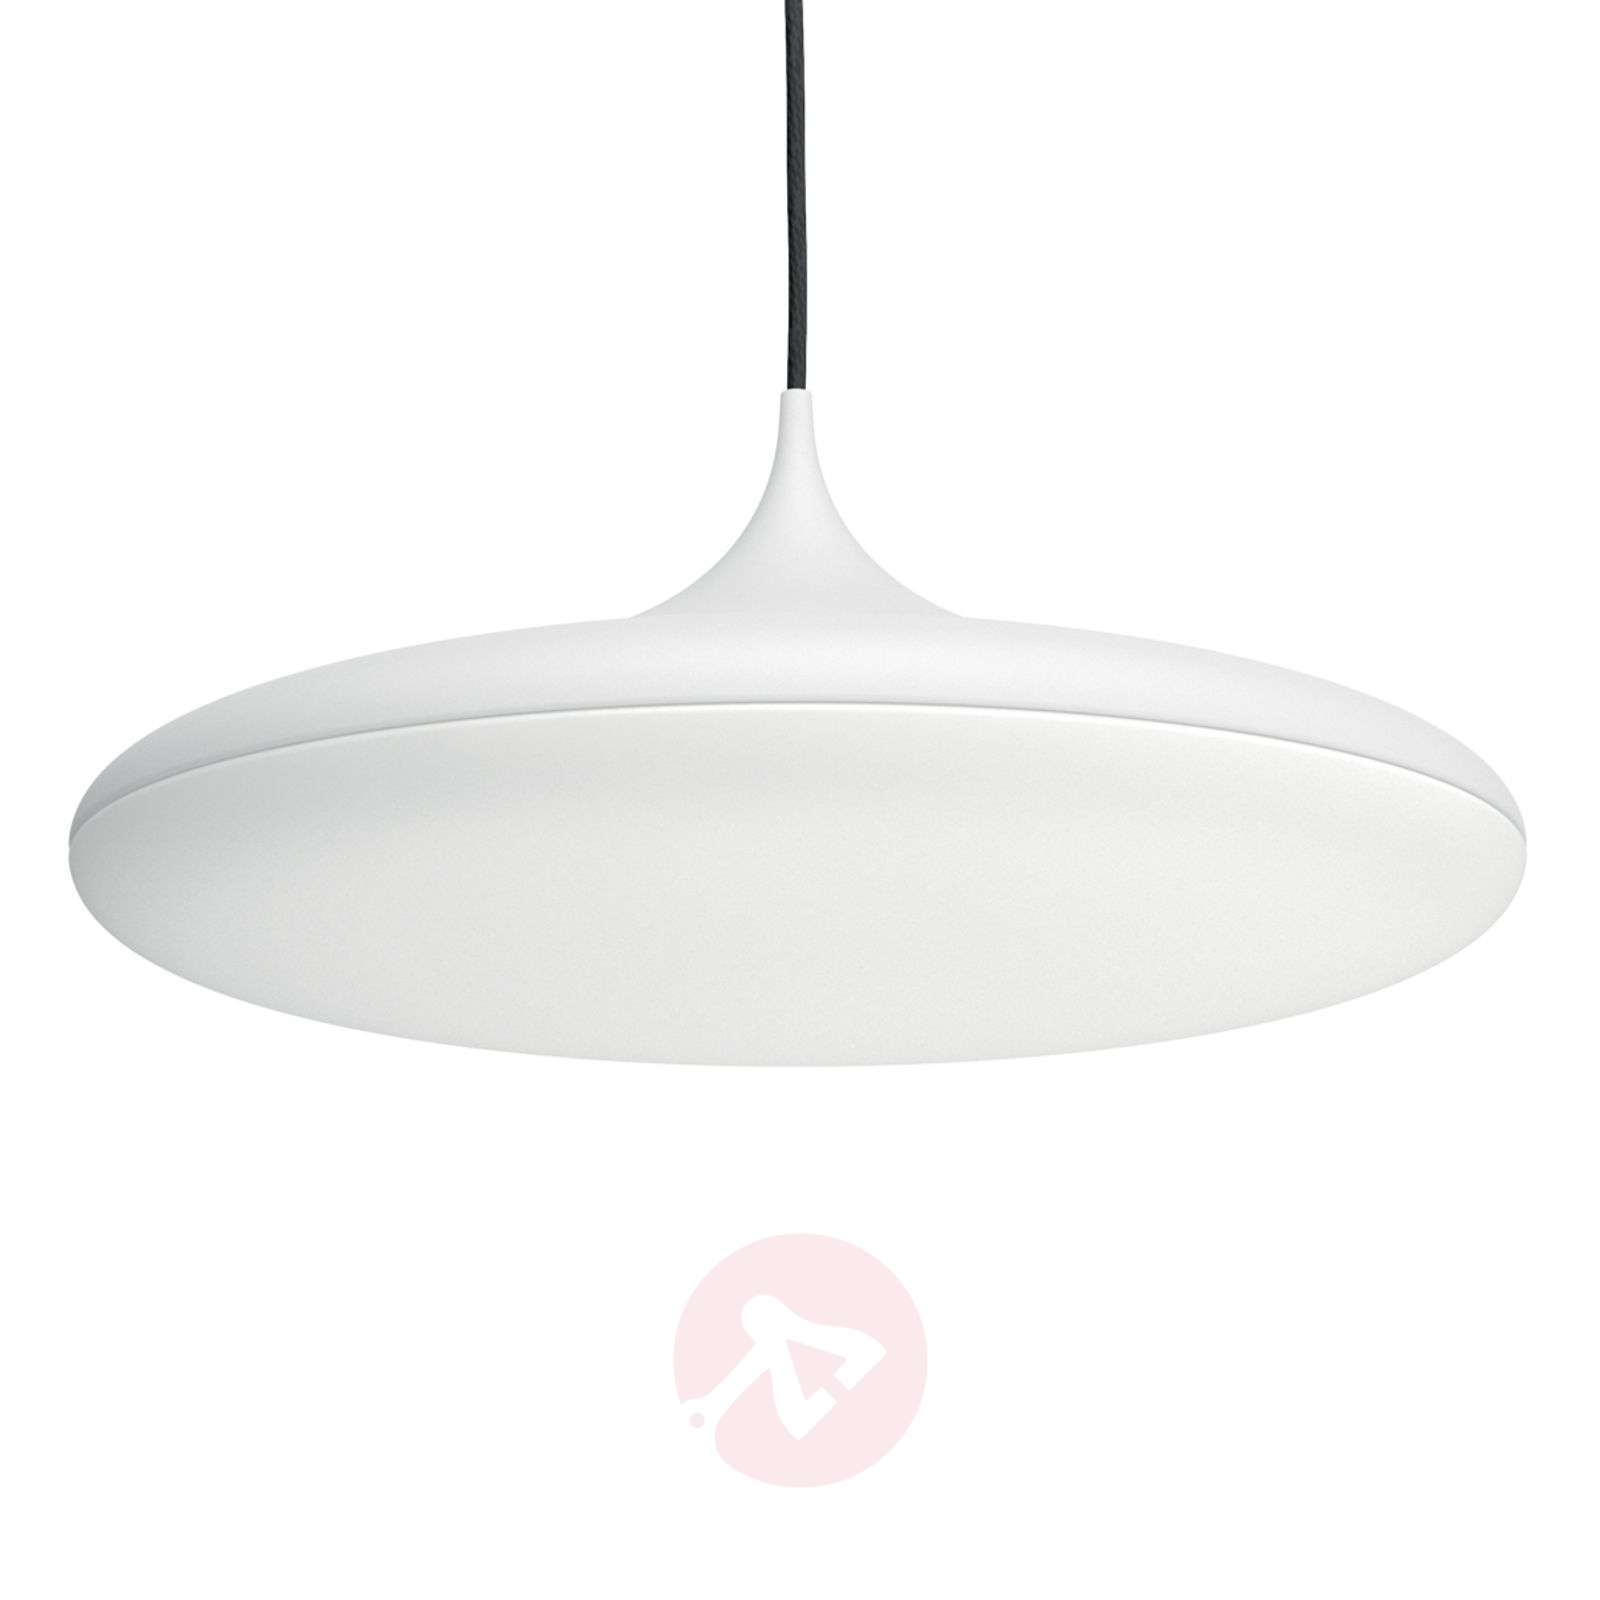 Suspension LED Philips Hue Cher réglable-7532058X-01